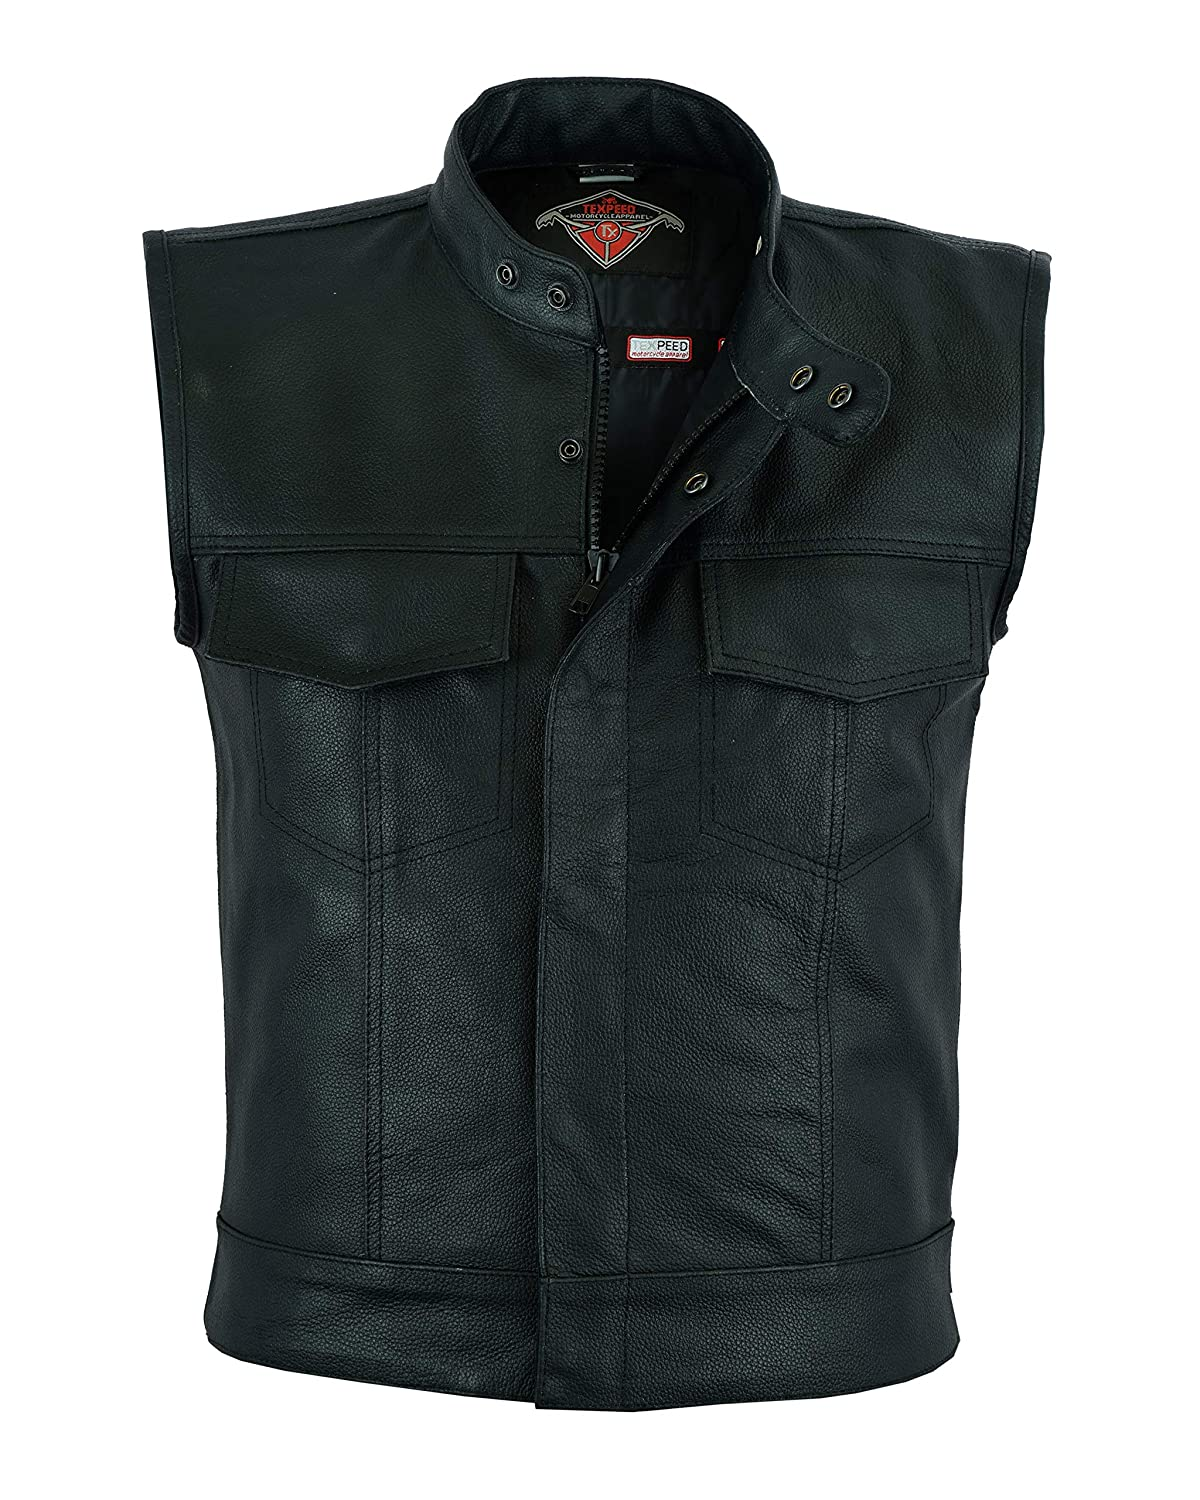 Sons of Anarchy Leather Biker Waistcoat Motorcycle Motorbike Vest by Texpeed